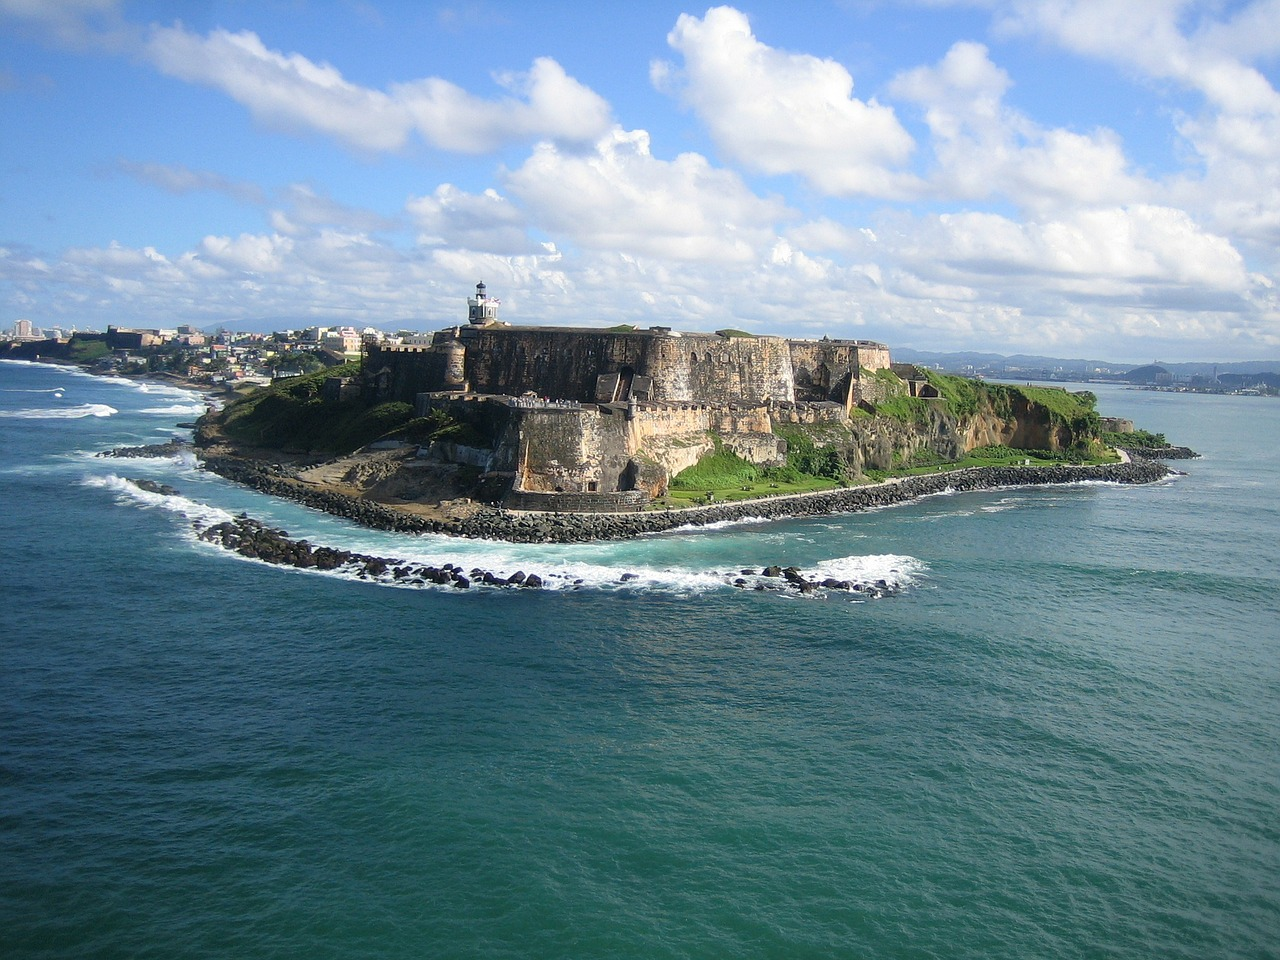 View of Puerto Rico